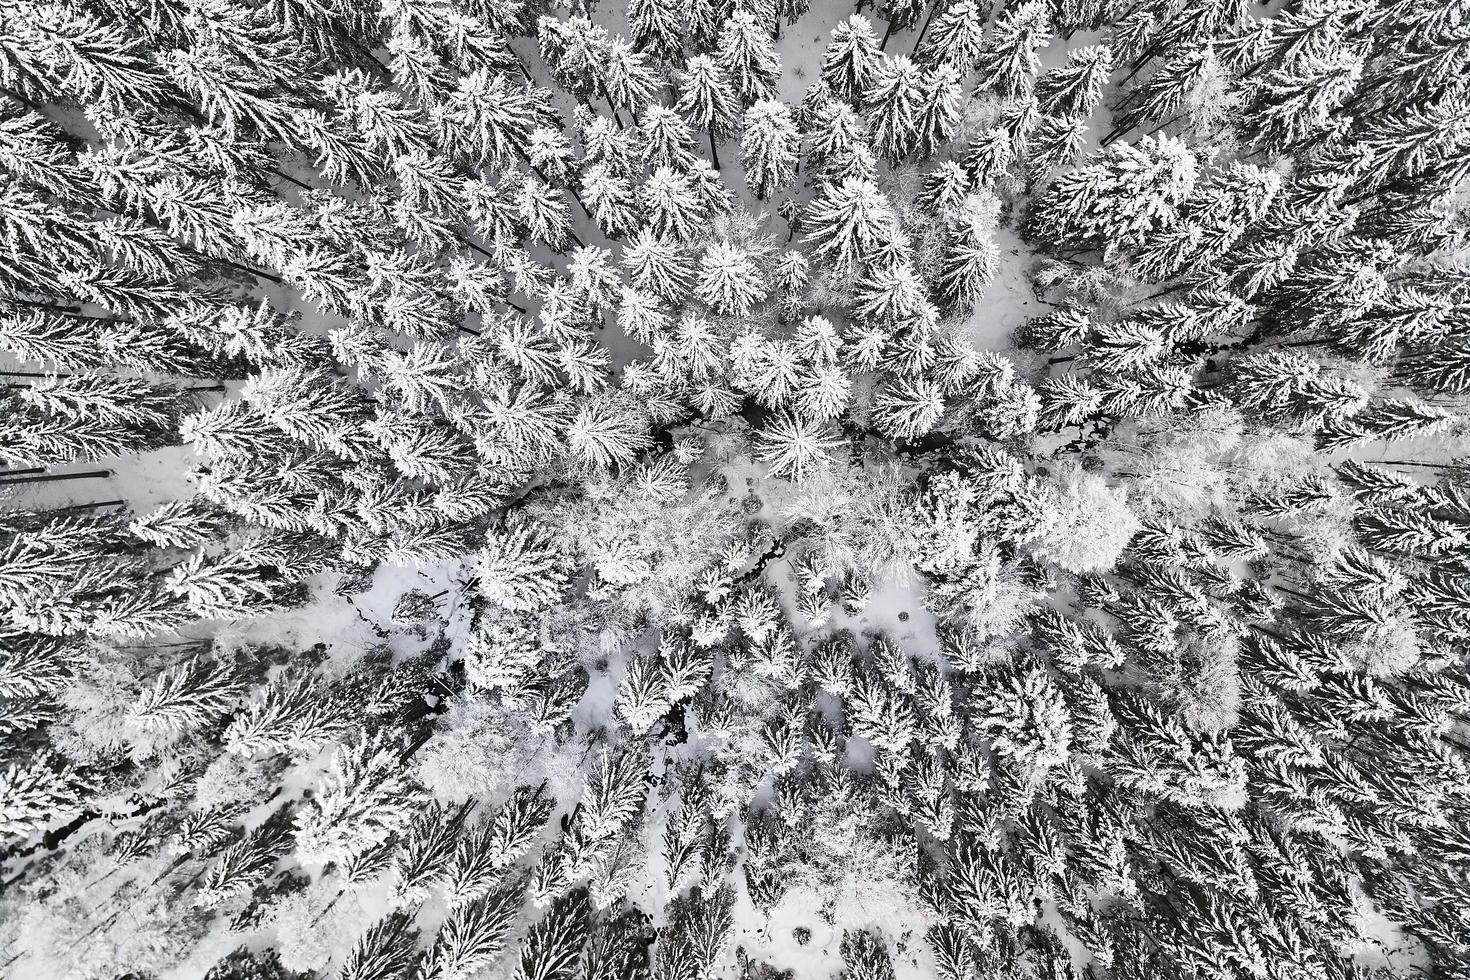 Top-down view of trees covered in snow photo